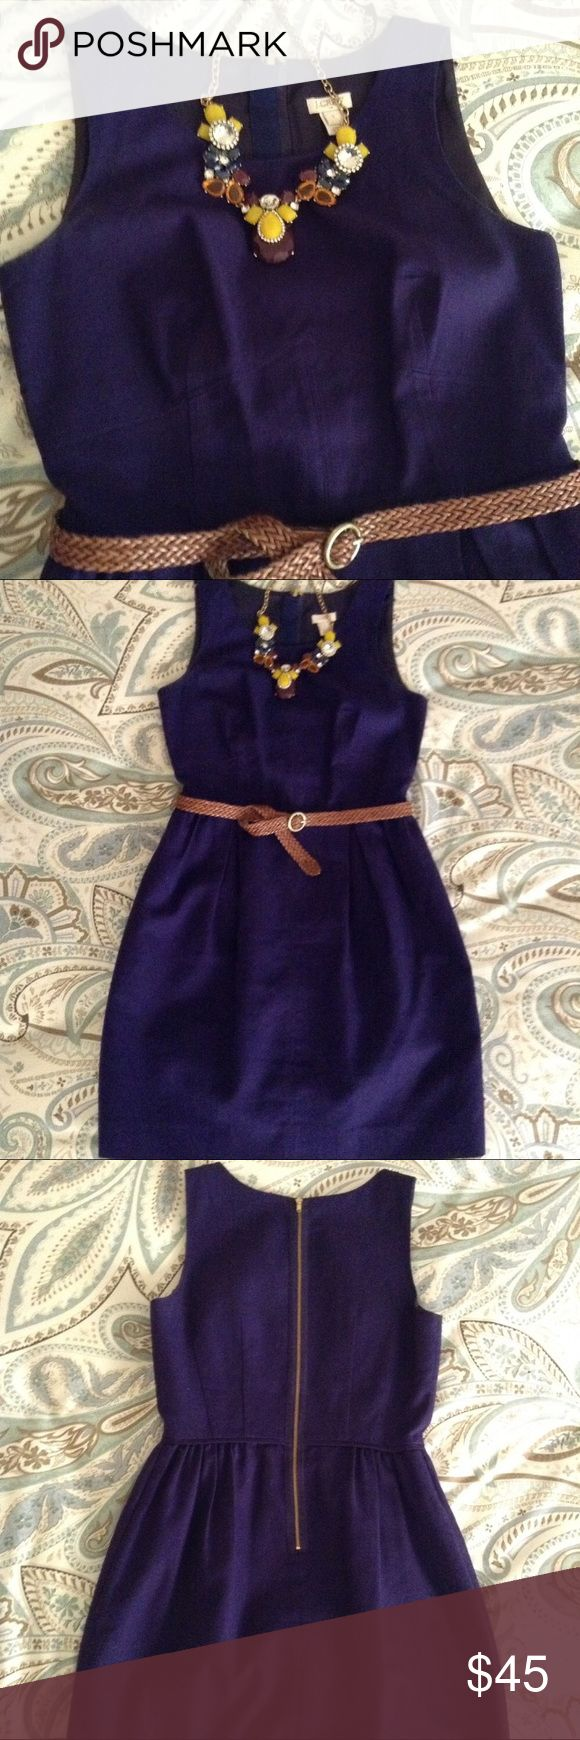 Purple Imperial Dress A beautifully shaped cotton dress from J.Crew! Seams in the front give shape and definition while pleats in the skirt give fullness and texture. A deep purple textured cotton with pockets and exposed back zipper! Re-posh. J. Crew Dresses